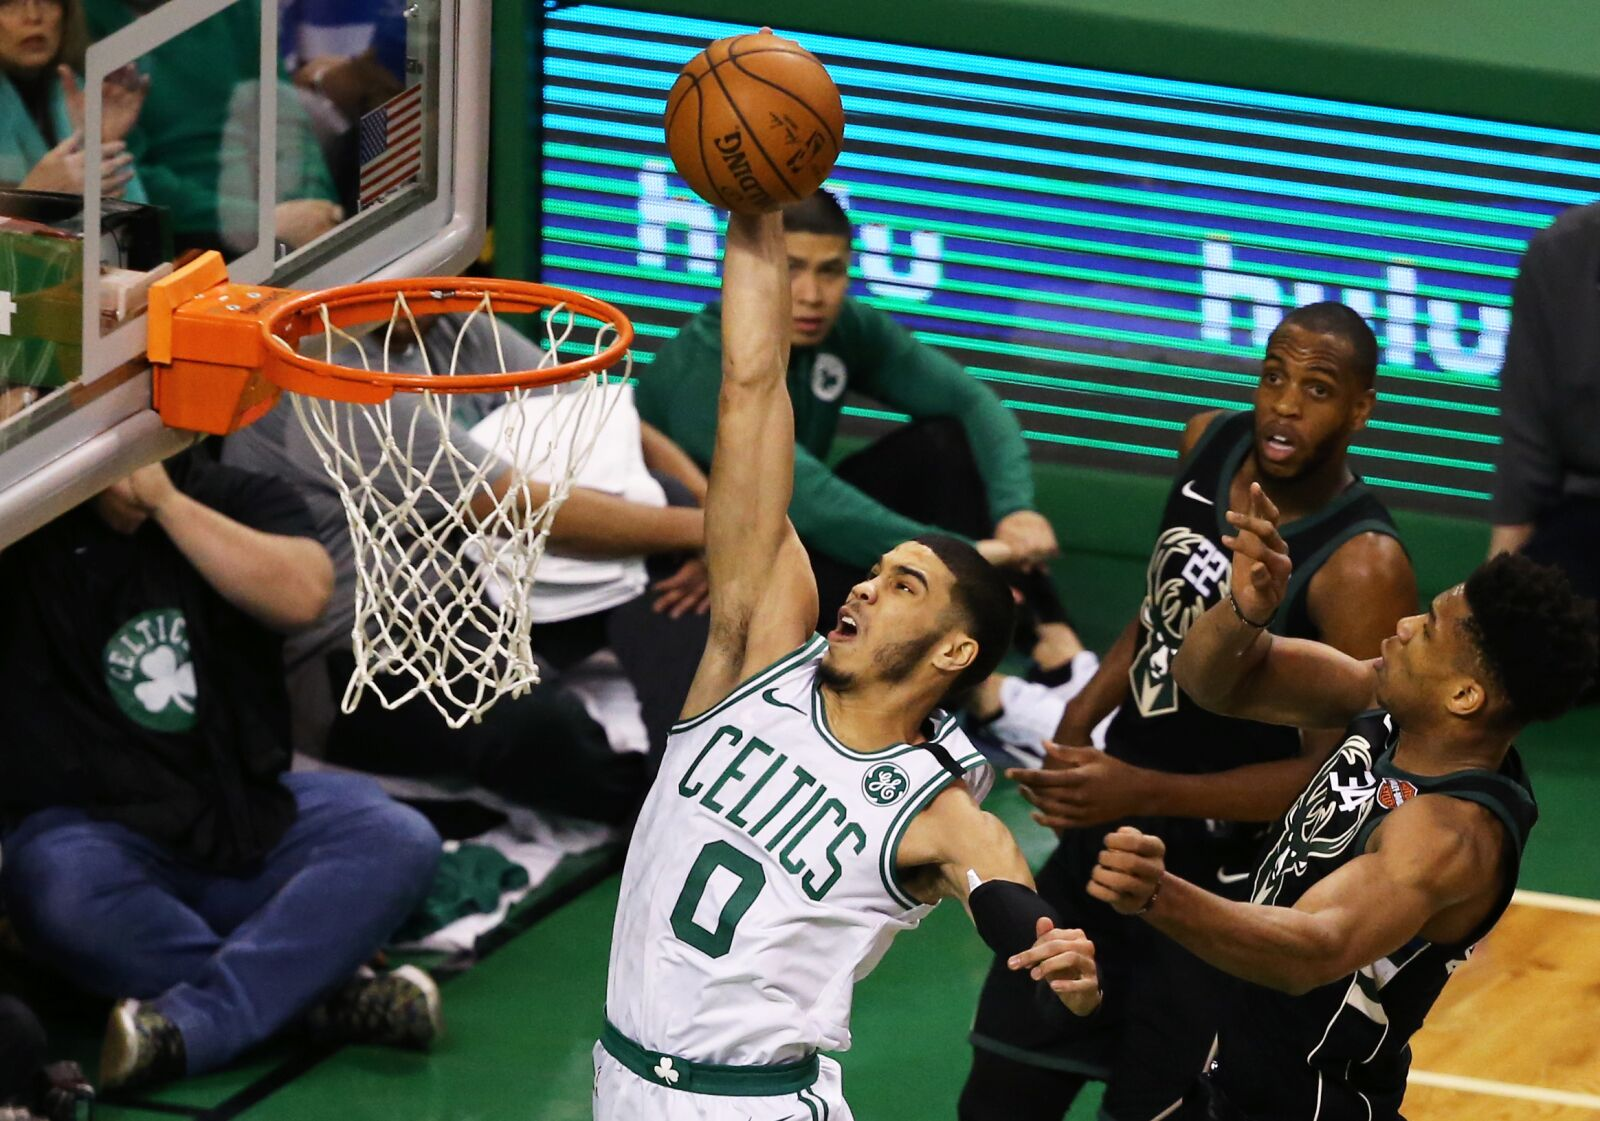 f9083eefb Duke Basketball  Jayson Tatum shows MVP potential early in his career